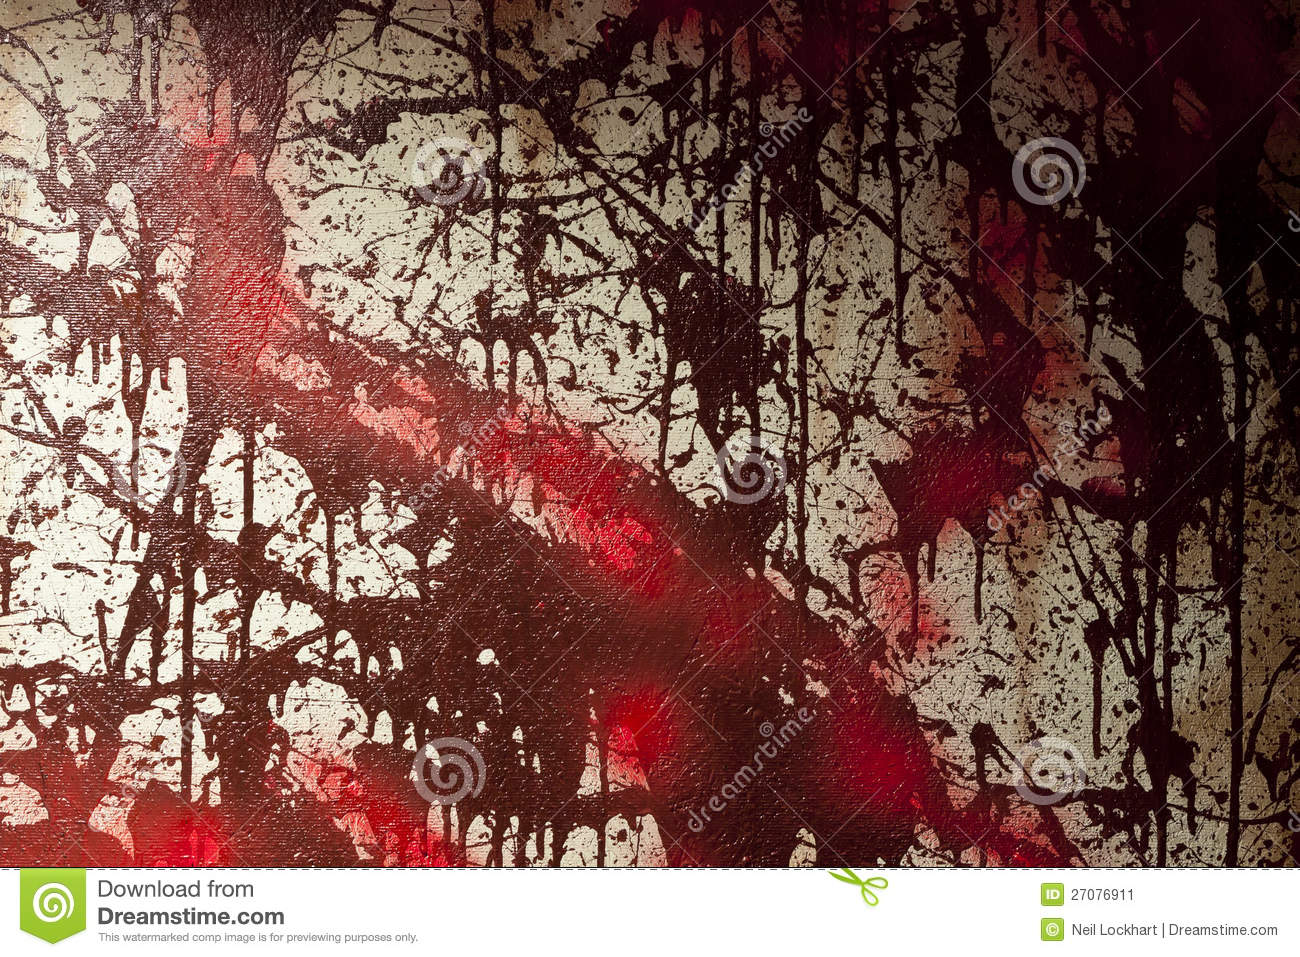 how to make fake blood stains